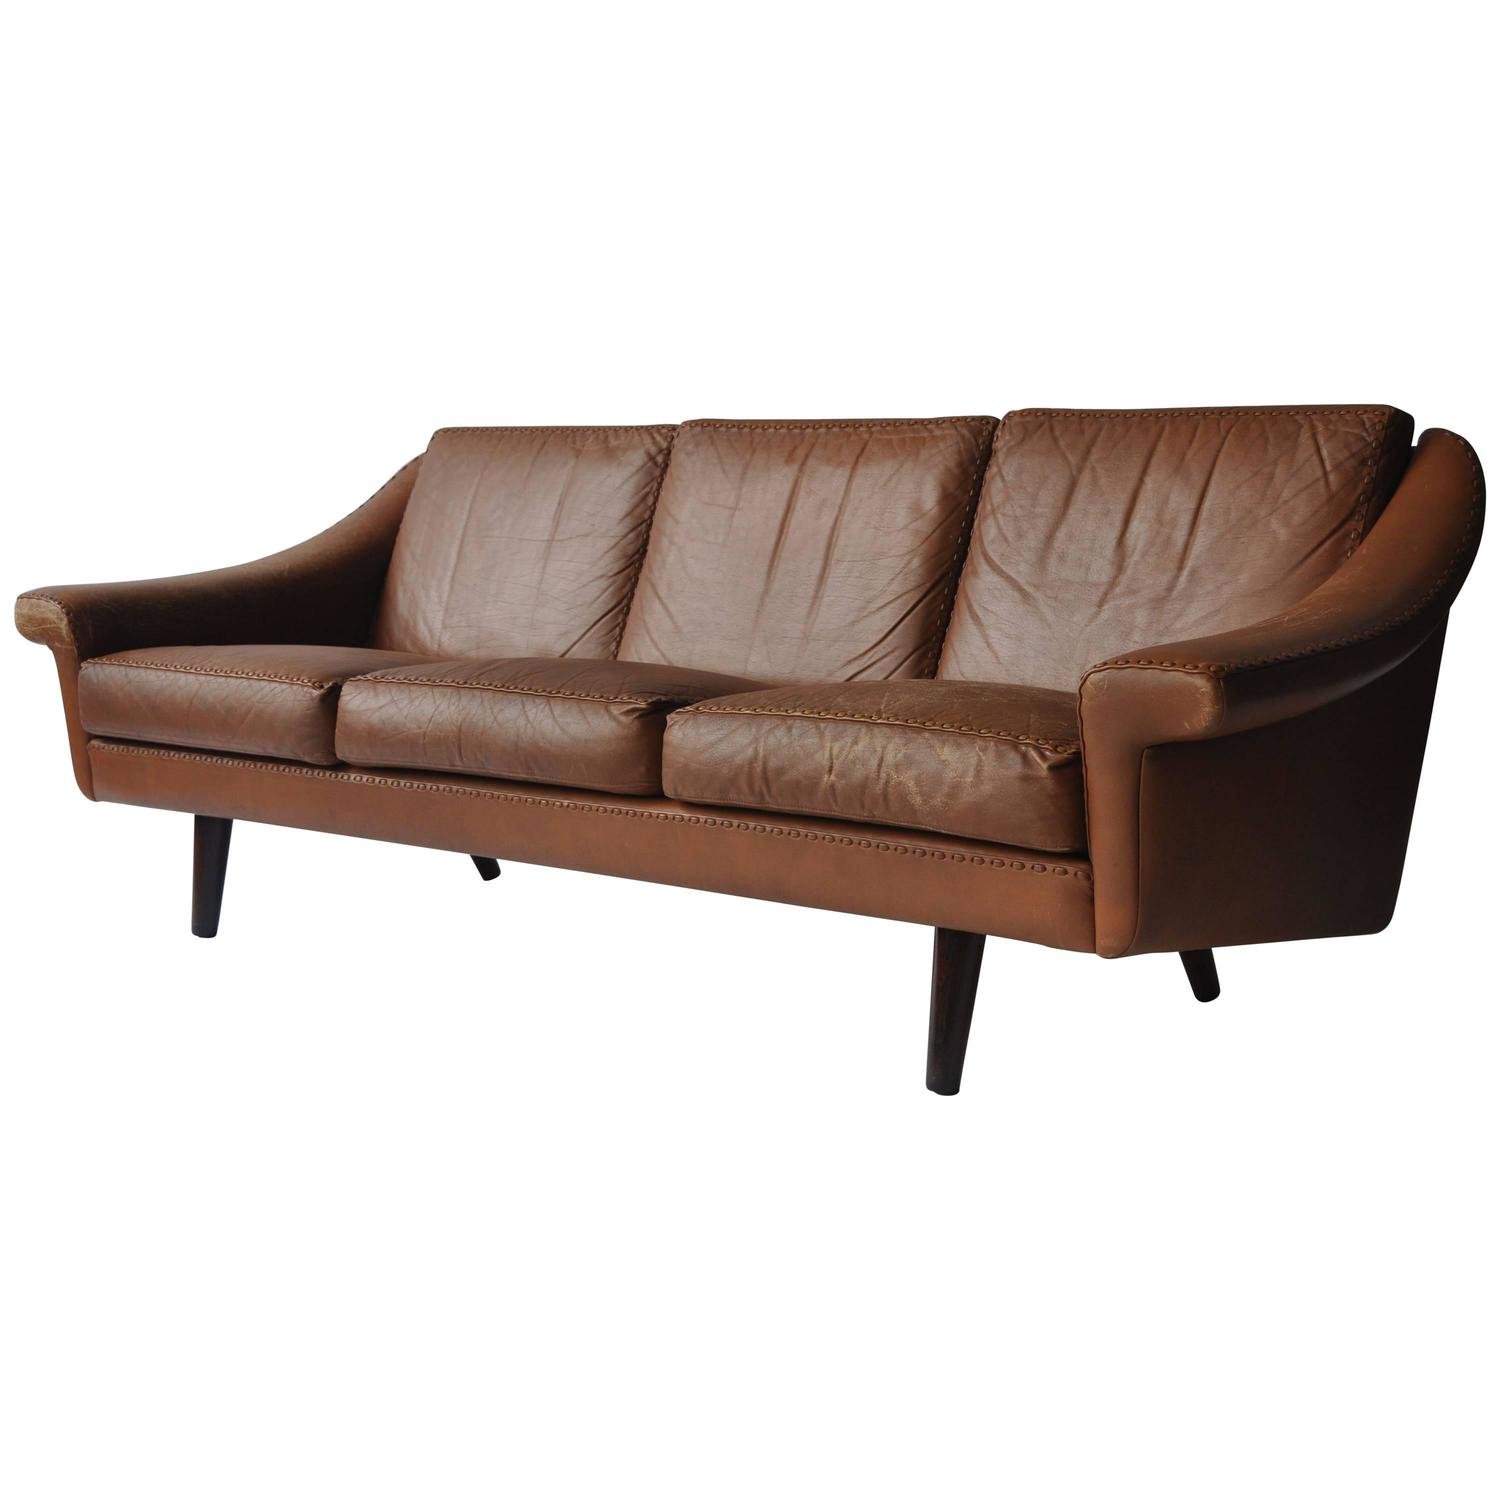 1960s Danish Leather Modular Sofa For Sale at 1stdibs